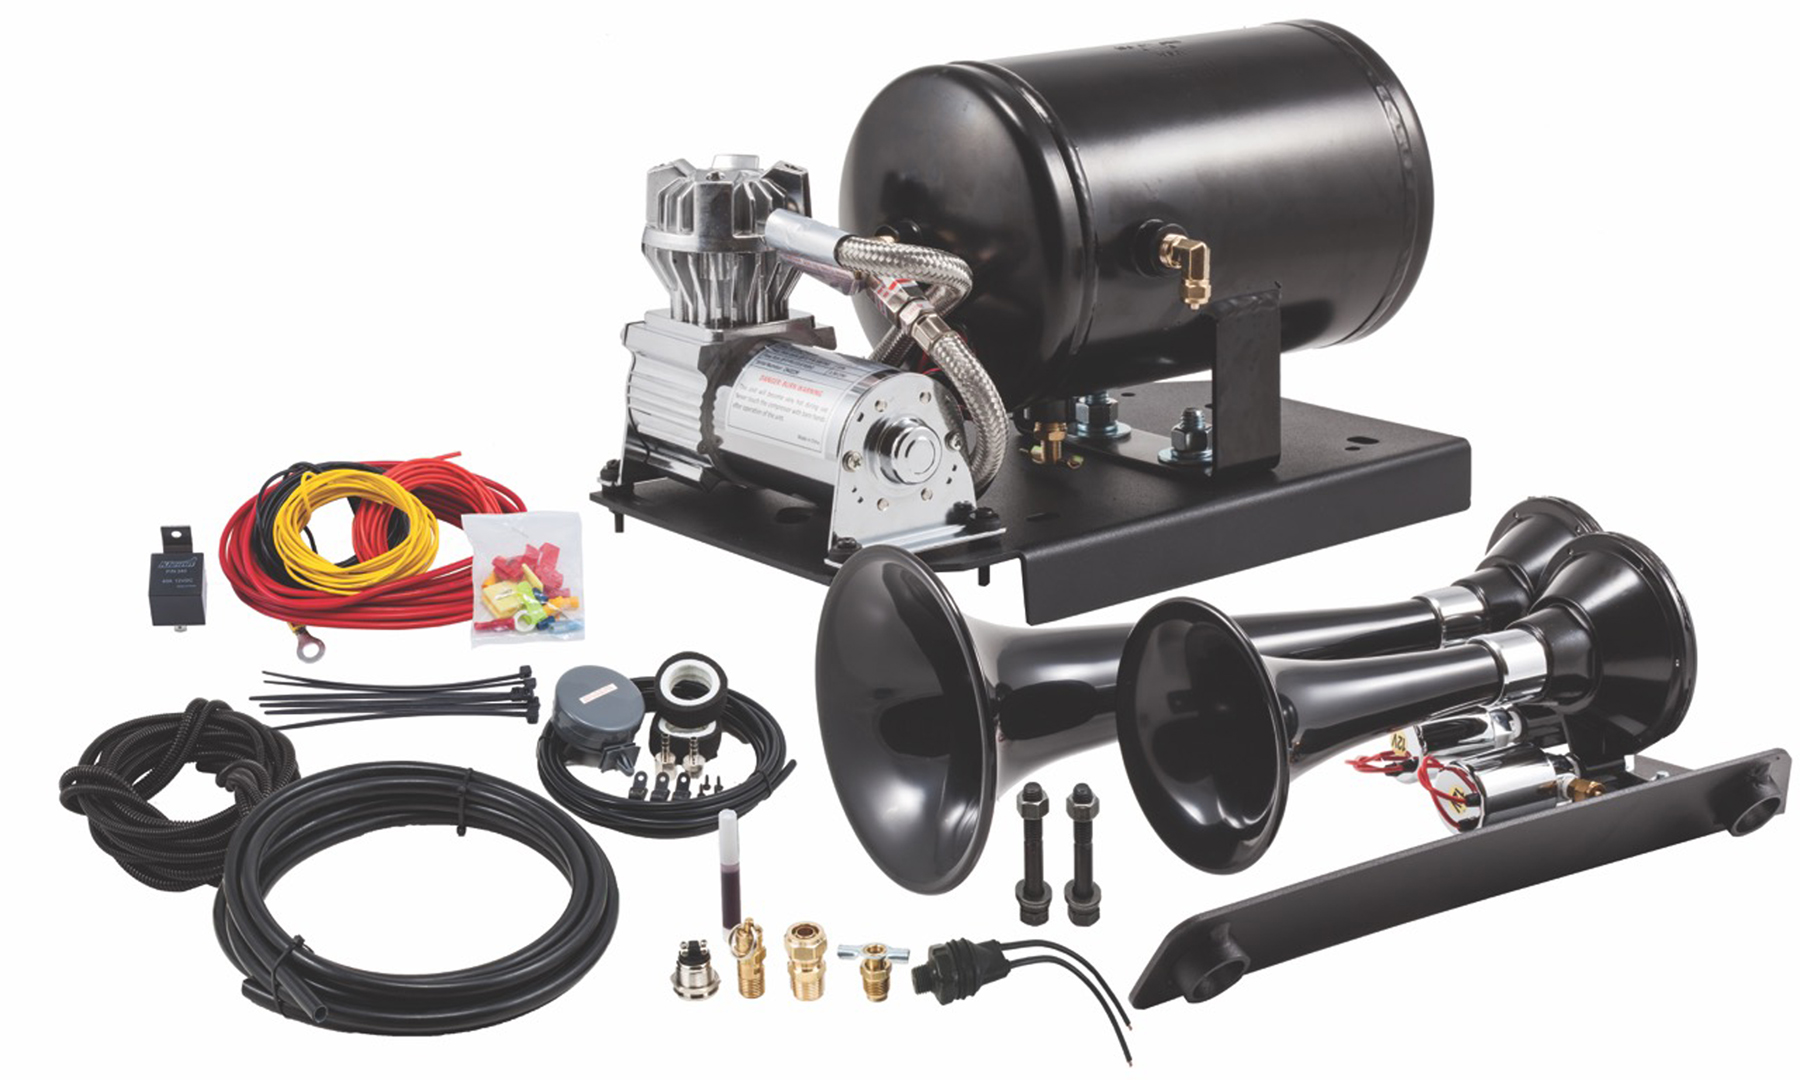 Gm 1500 Under Hood Train Horn Kit With Model 220 Dual Horns Battery Wiring Description